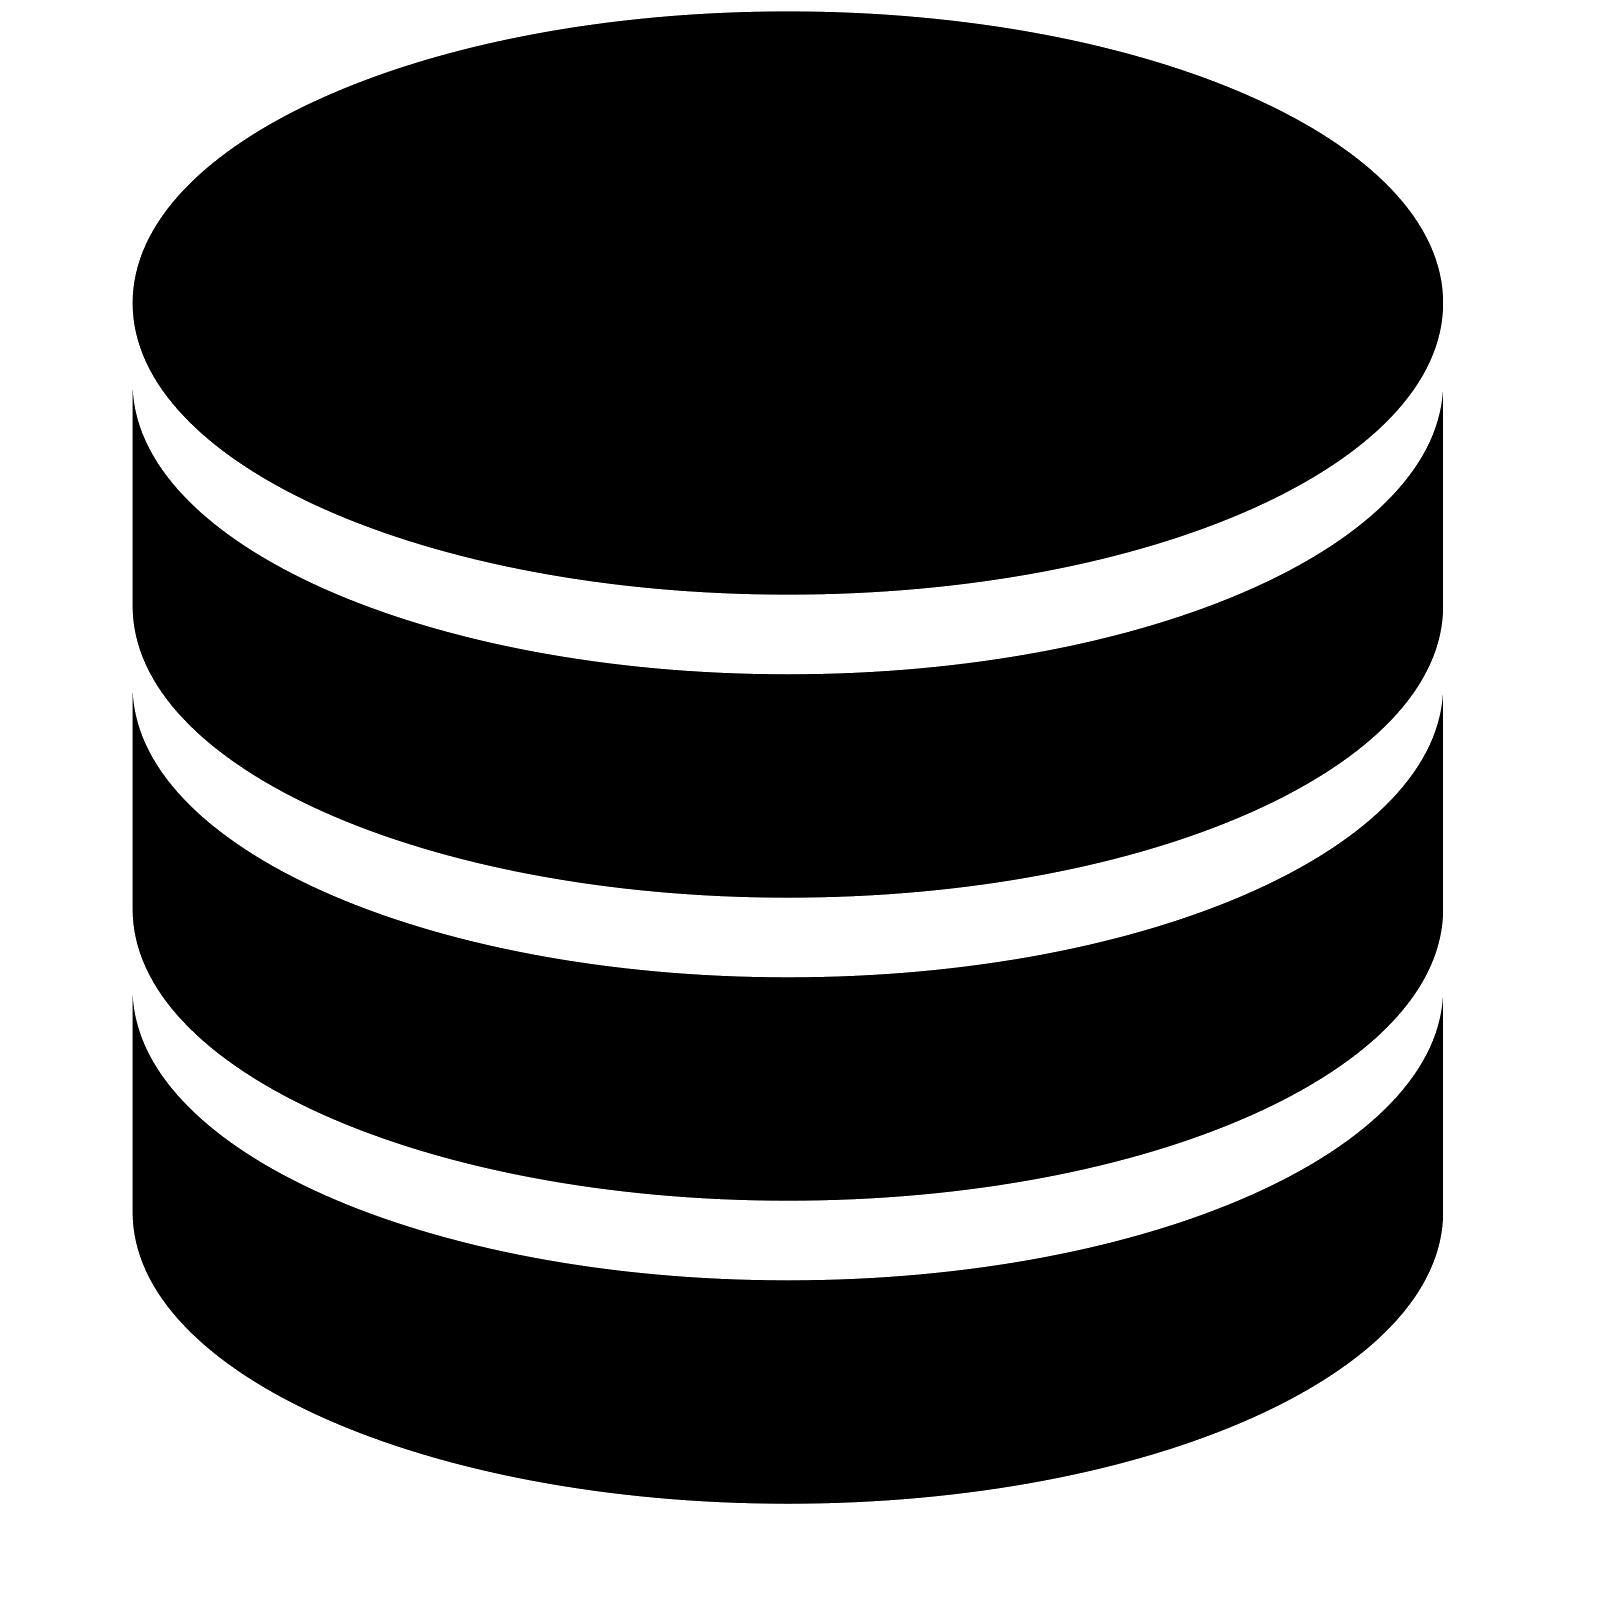 database icon png